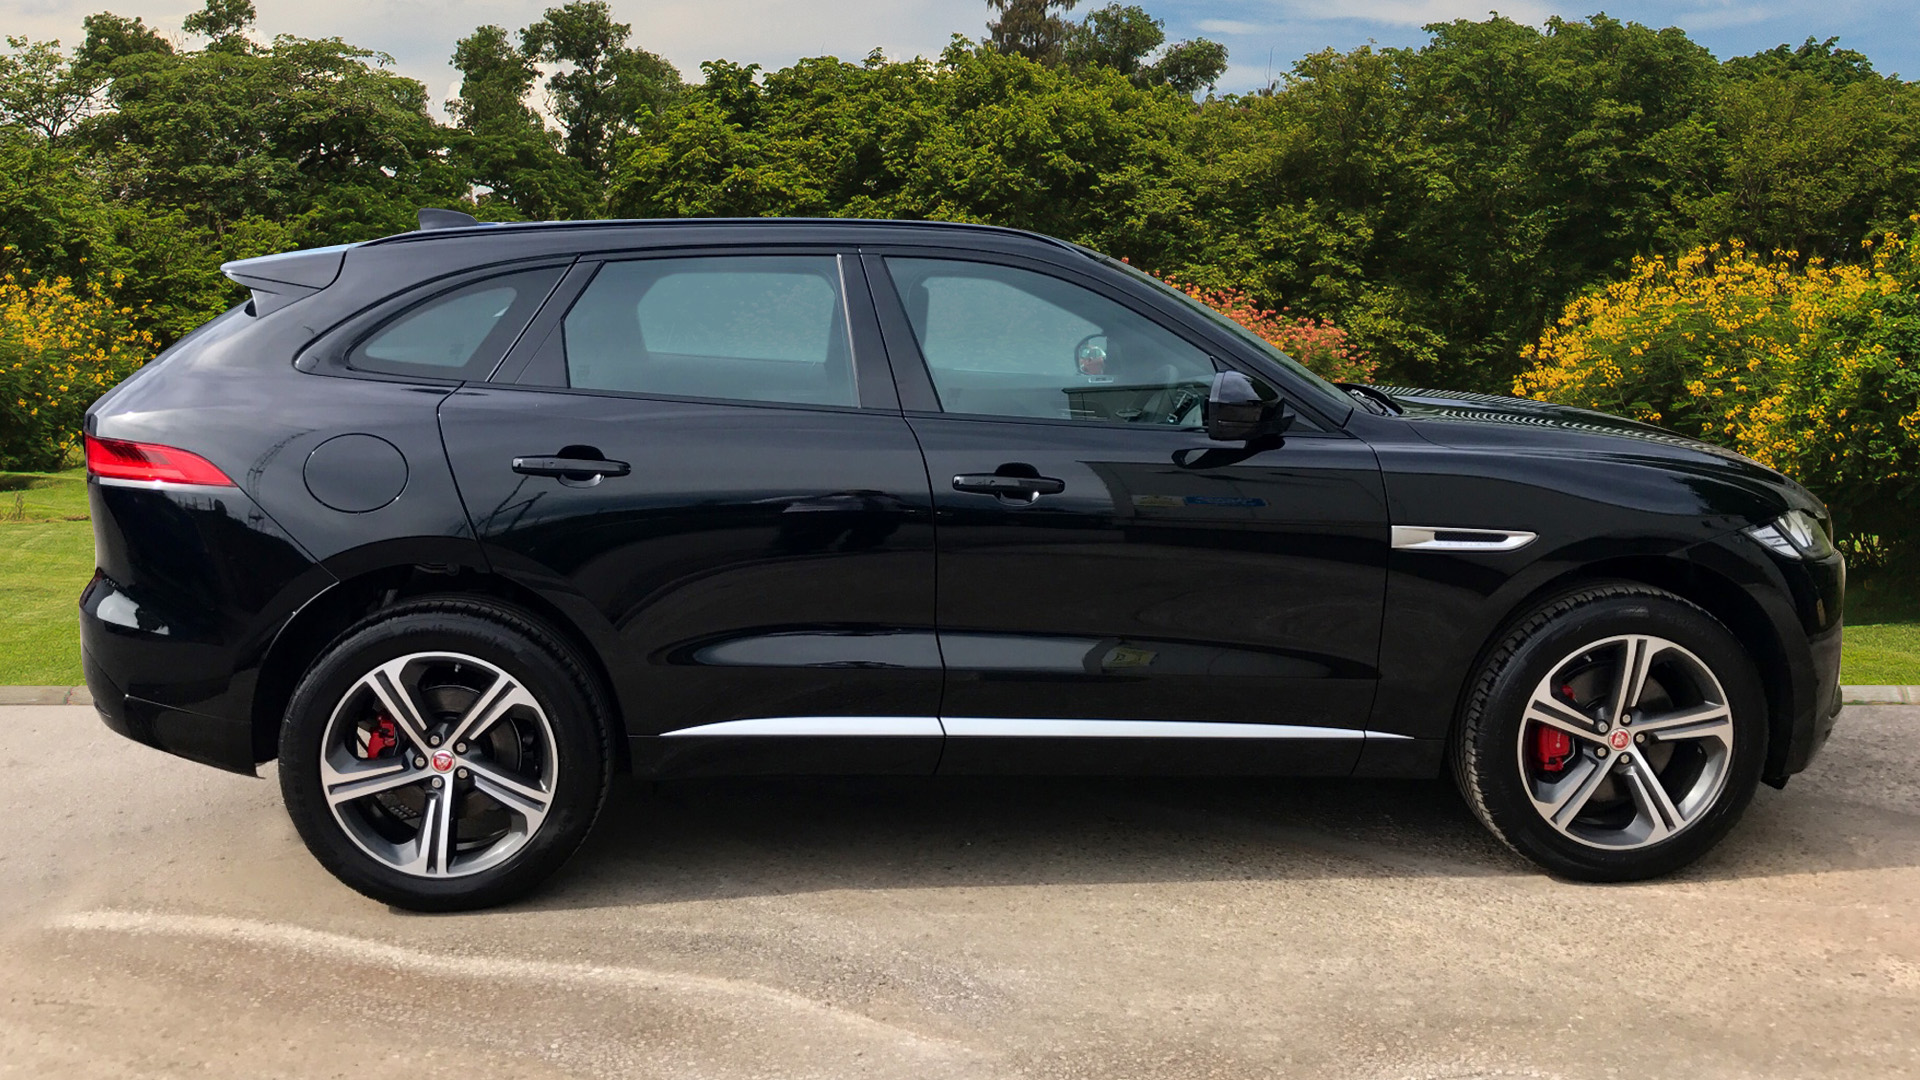 Used Jaguar F Pace 3 0D V6 S 5Dr Auto Awd Diesel Estate for Sale